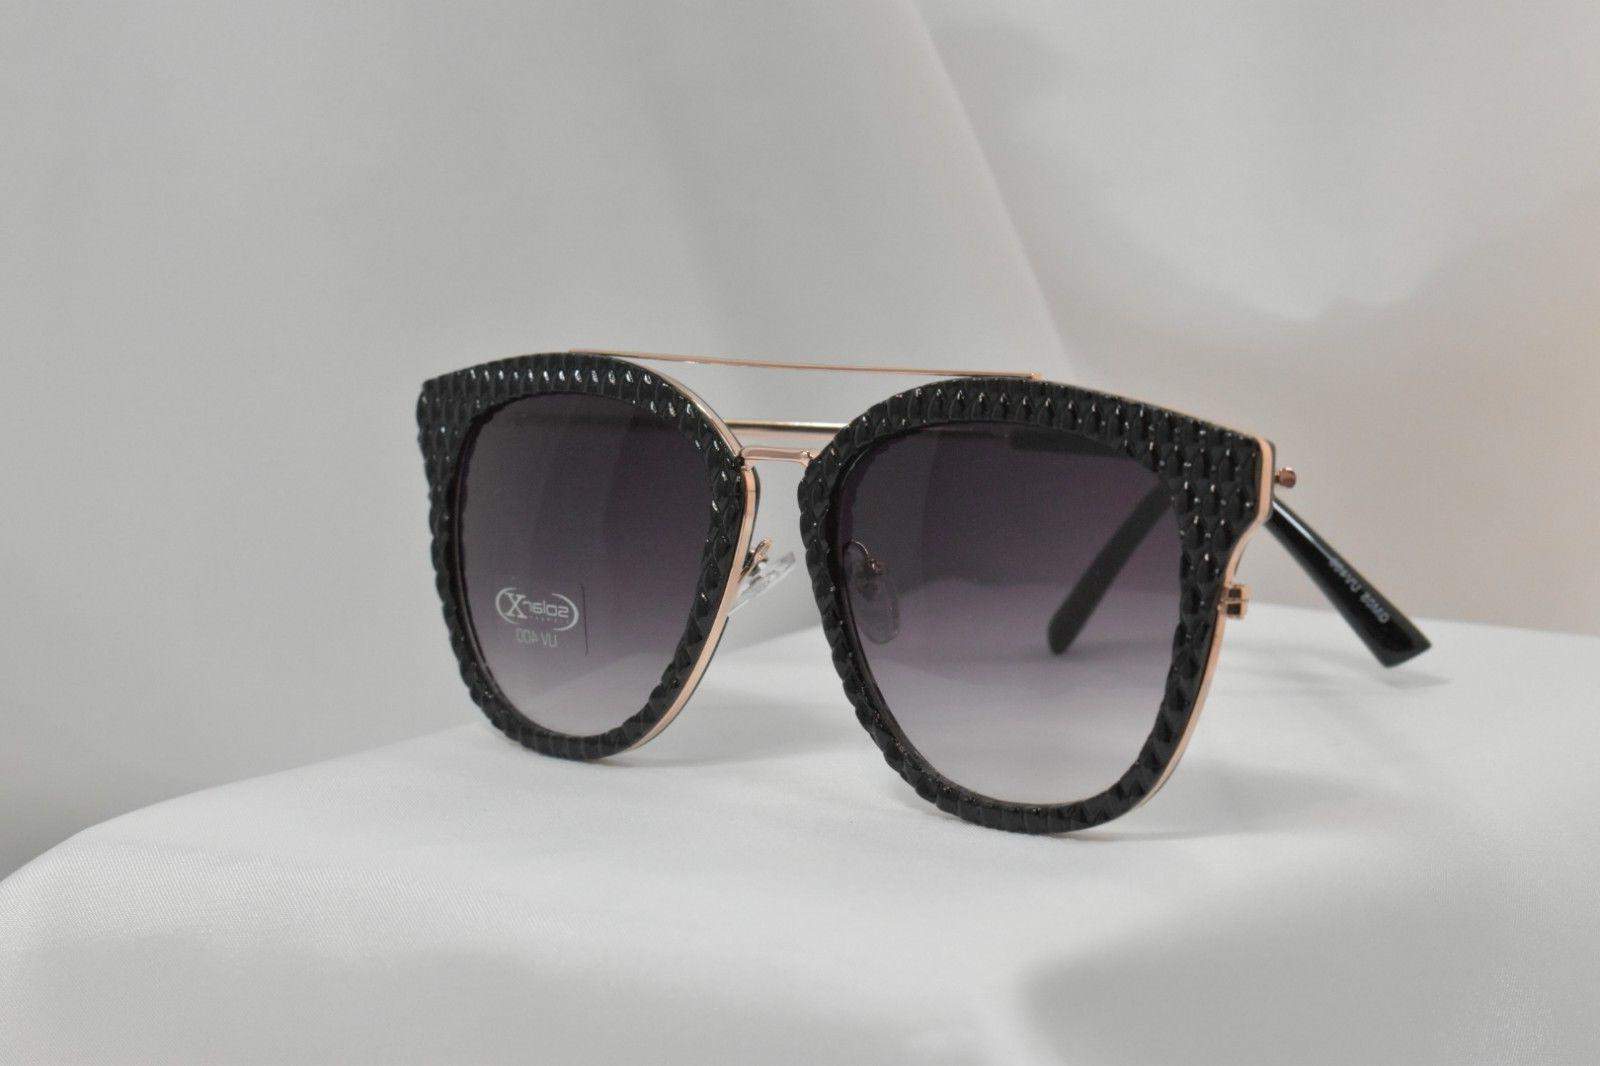 Women's Sunglasses BLACK Textured Frames with Rose Gold Wire